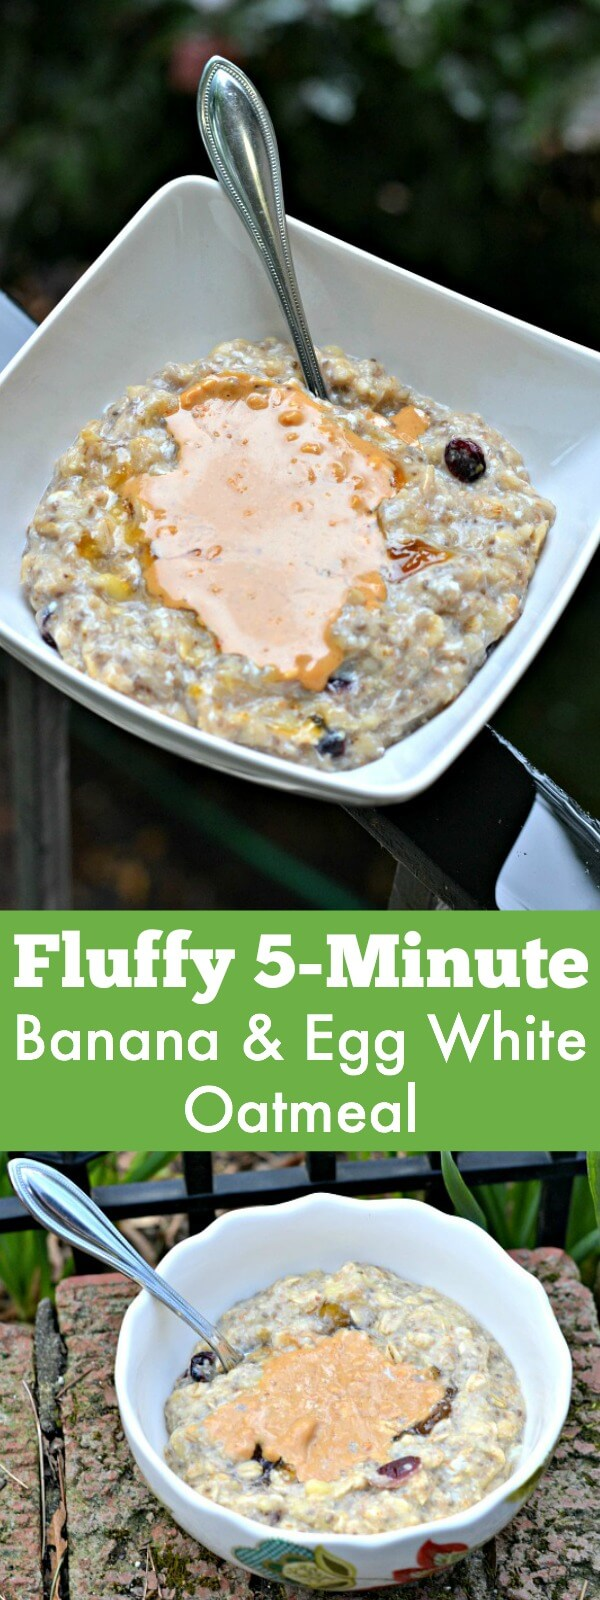 Fluffy 5 Minute Banana Egg White Oatmeal. This is a warm, filling breakfast with an extra protein punch thanks to the egg whites. Top with your favorite nut butter to really take it over the top!